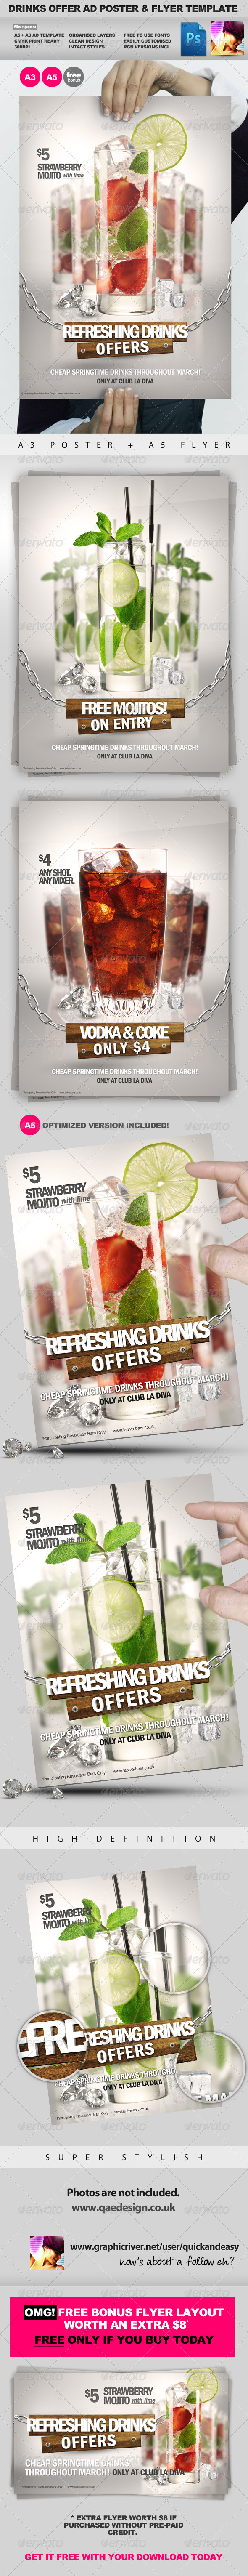 GraphicRiver Drinks Promotion Advert Template Vol.2 1203637